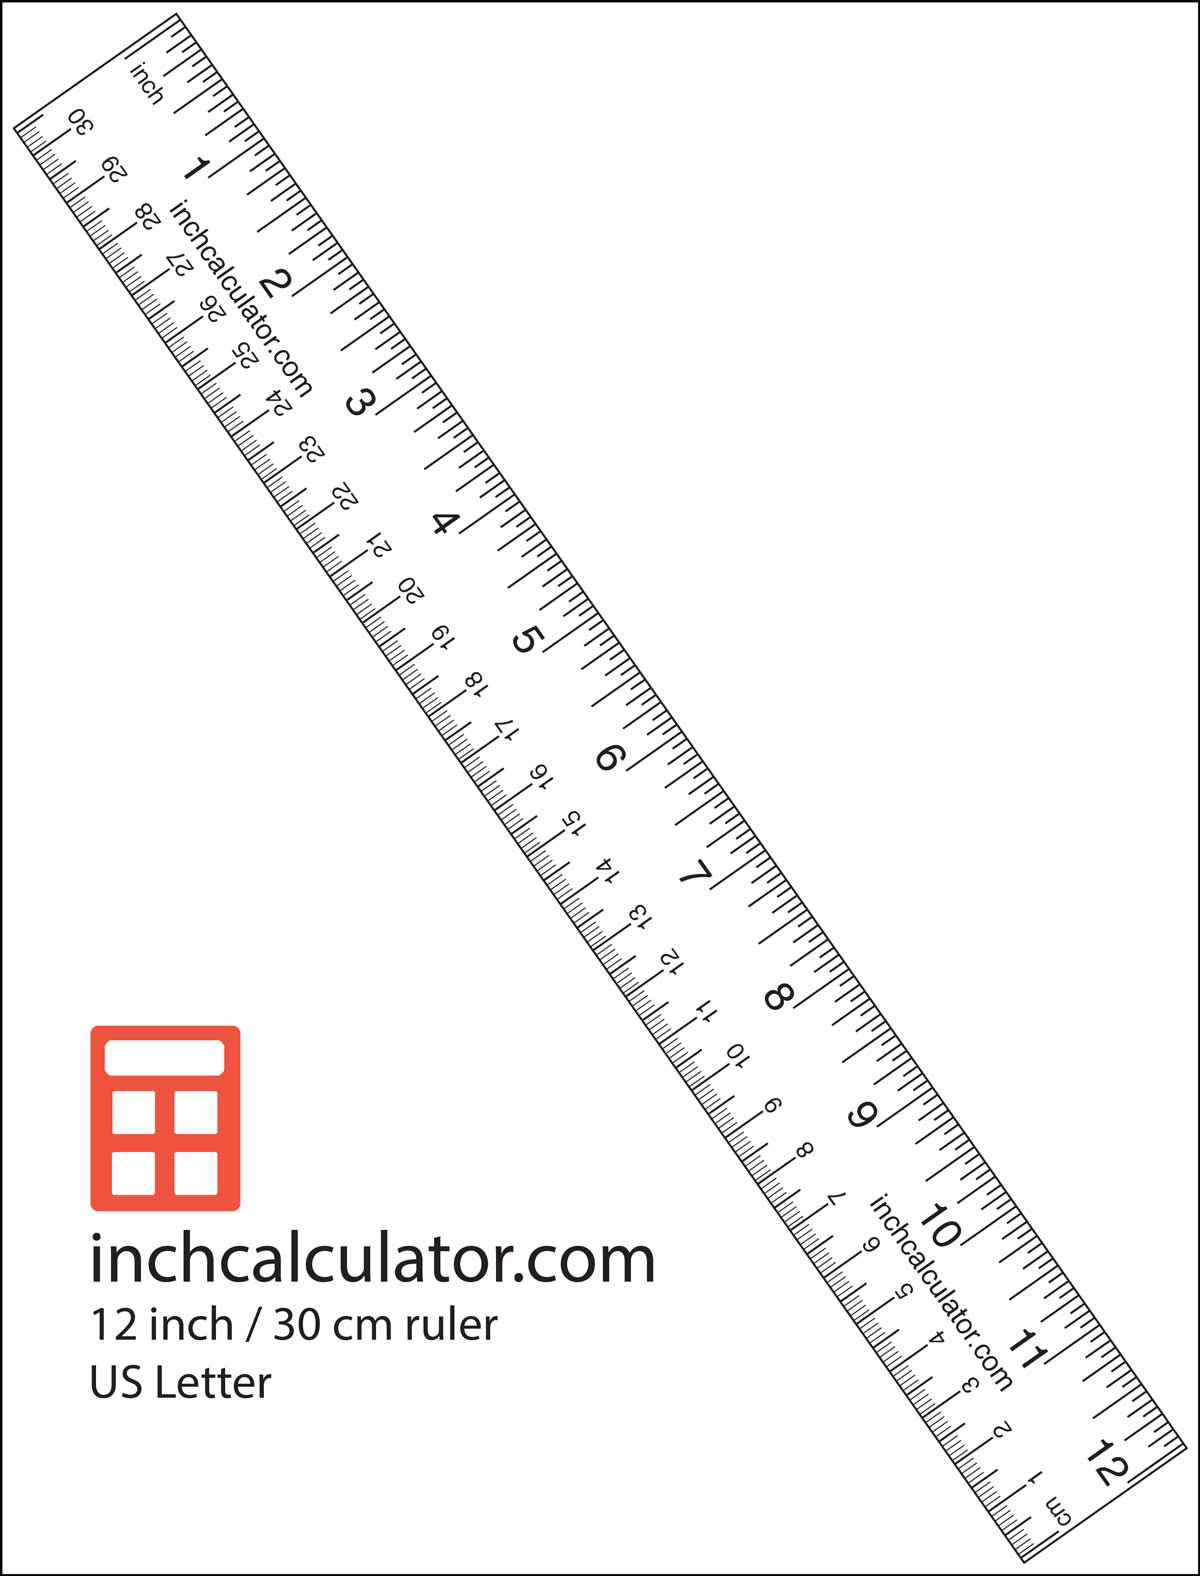 printable rulers free downloadable 12 rulers inch calculator. Black Bedroom Furniture Sets. Home Design Ideas